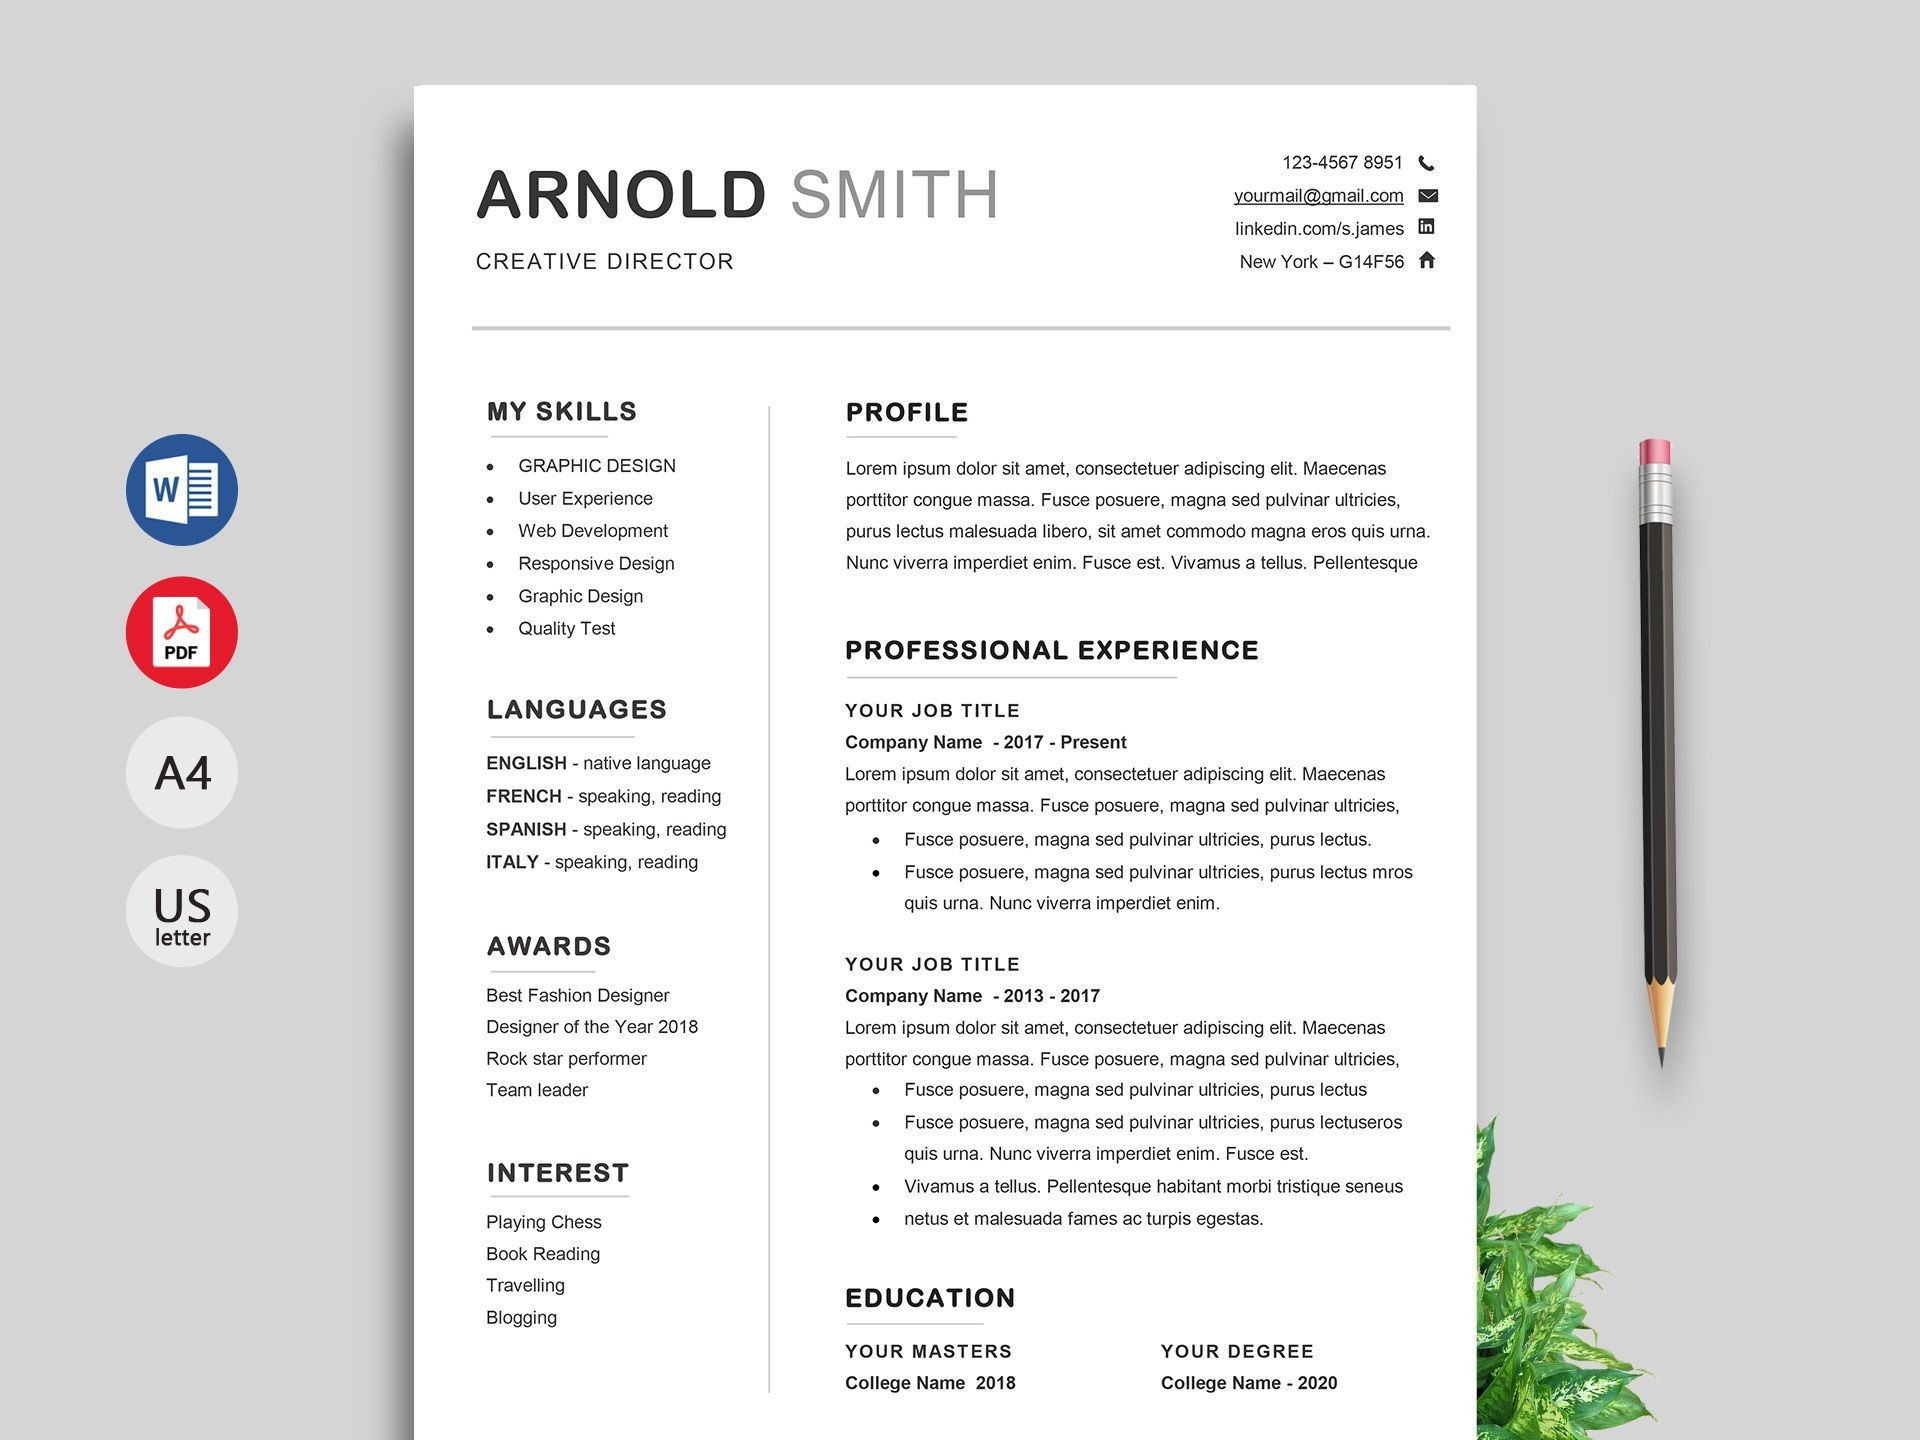 001 Outstanding Cv Template Free Download Word Doc Highest Clarity  Editable Document For Fresher Student Engineer1920